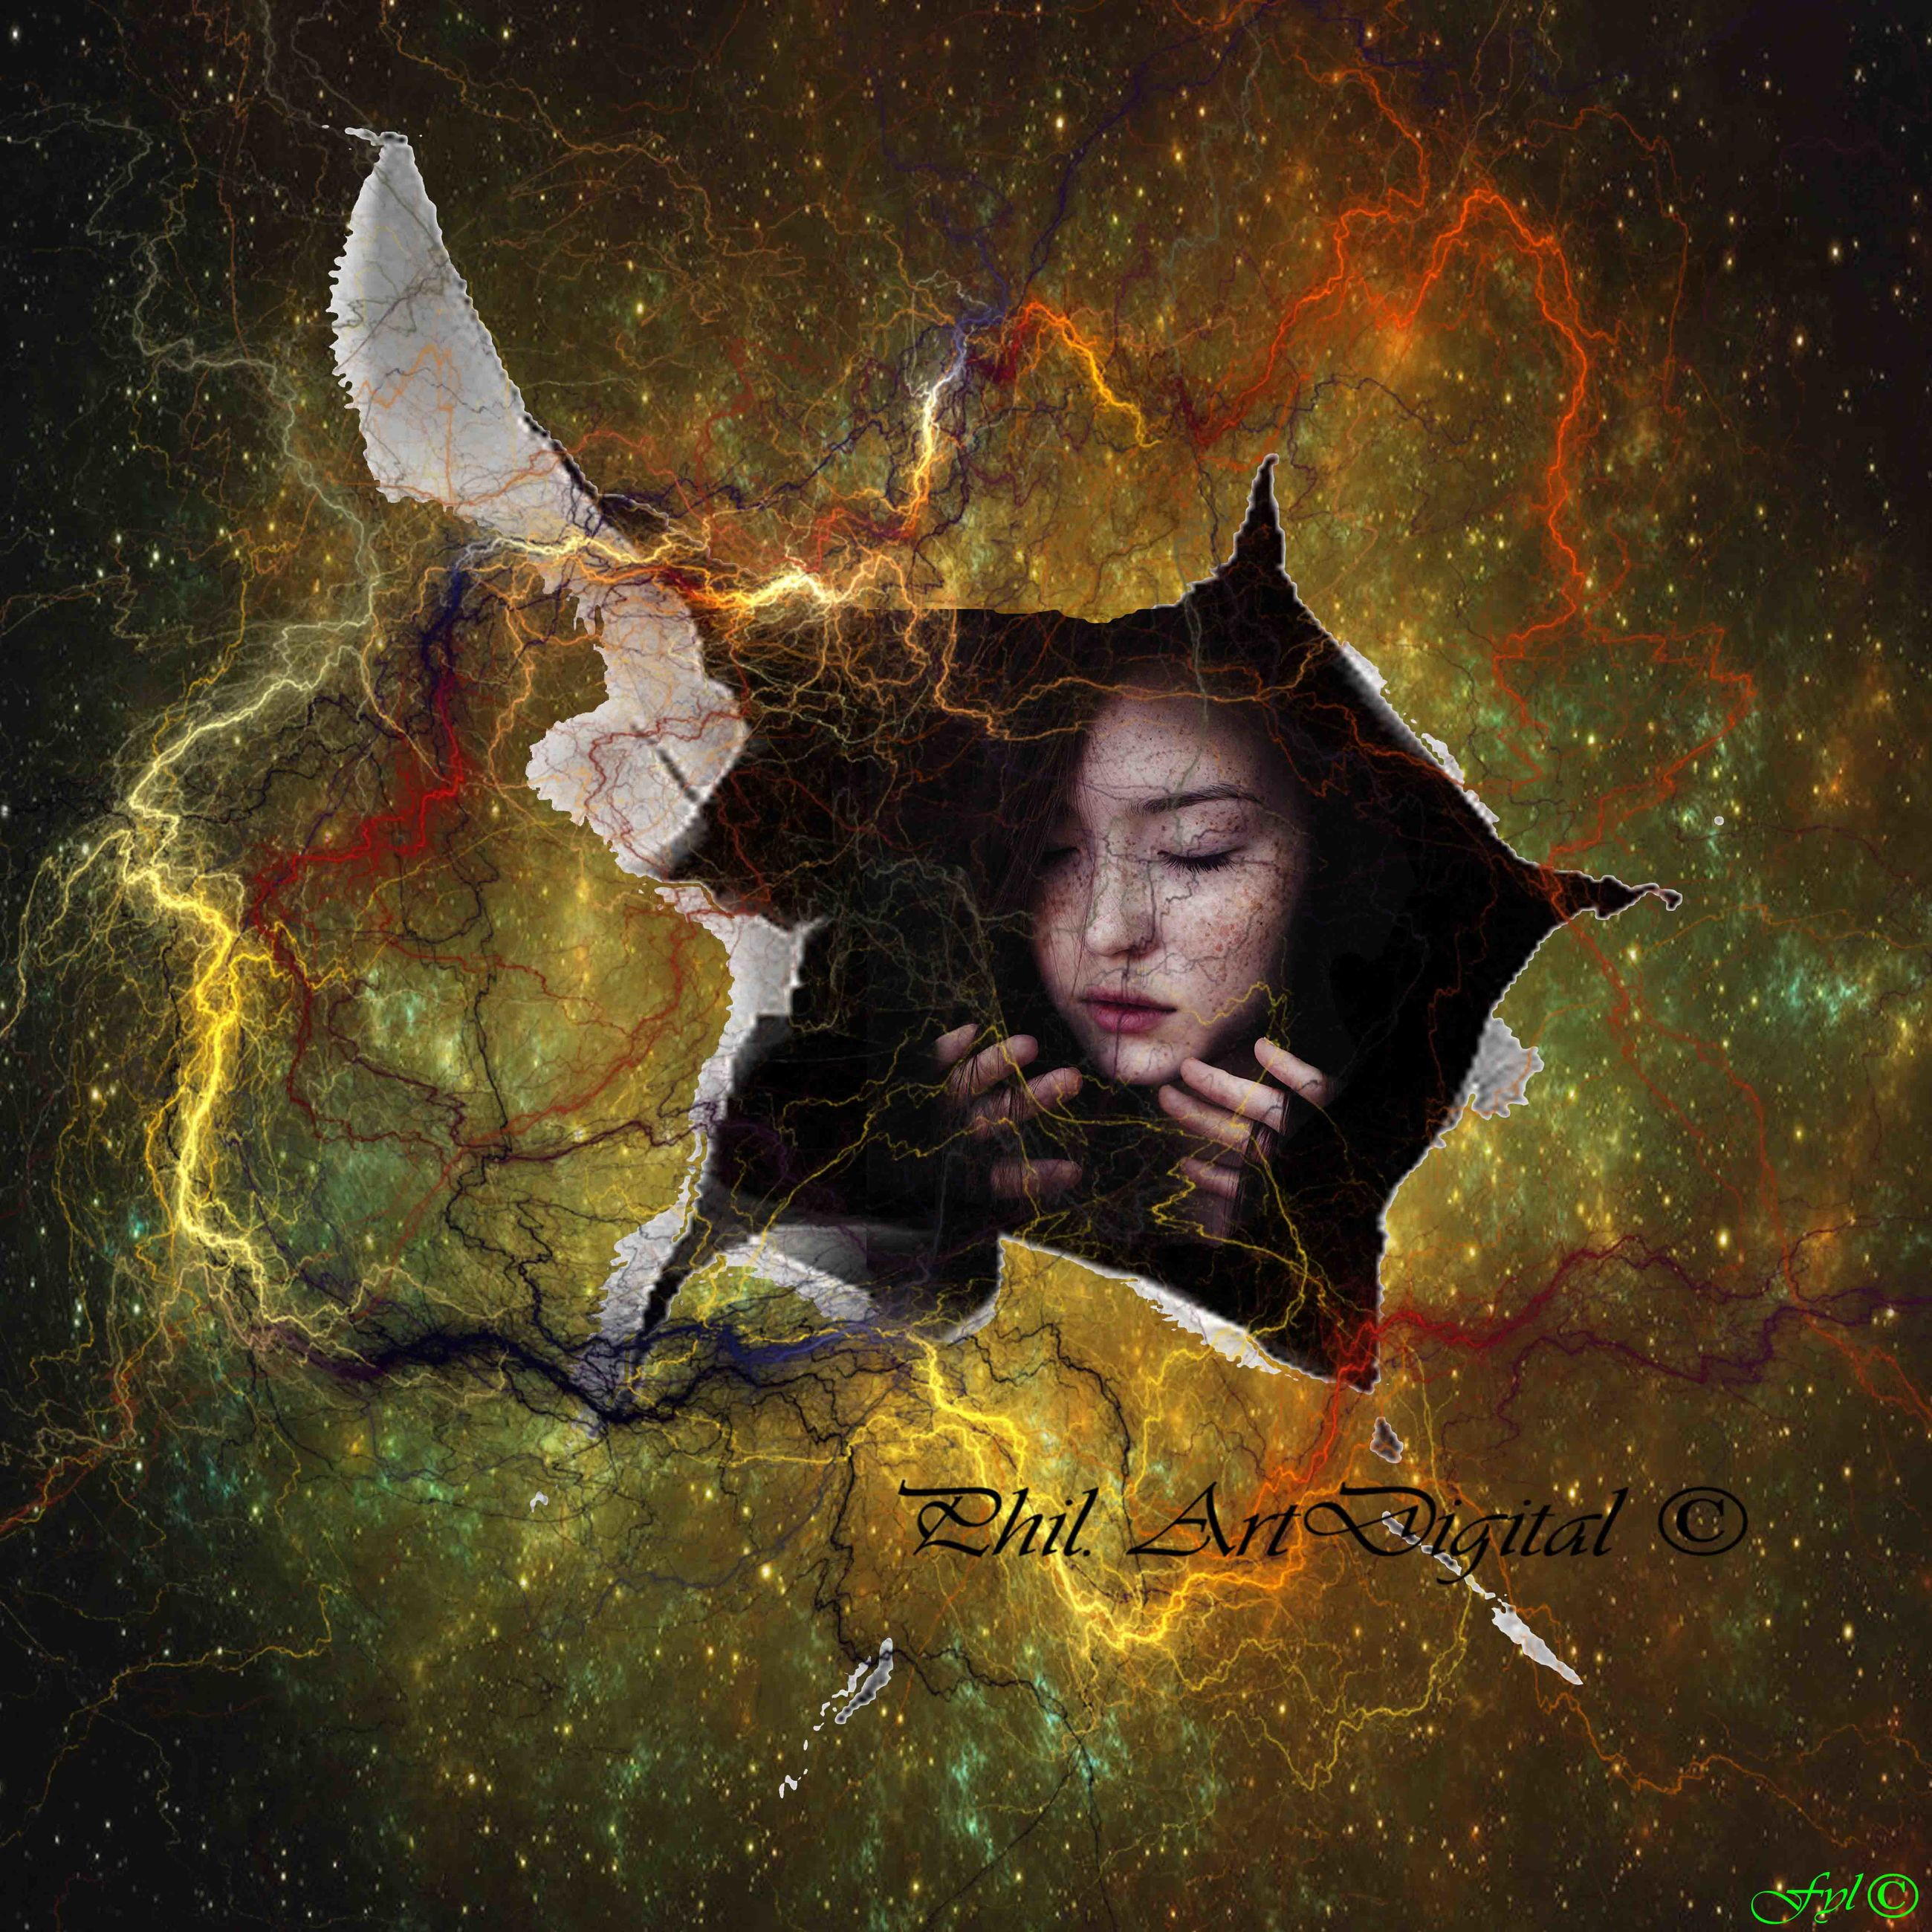 digital composite, one person, art and craft, nature, fantasy, creativity, adult, women, sky, outdoors, young adult, headshot, portrait, emotion, fairy tale, mystery, communication, transparent, contemplation, witch, textured effect, angel, teardrop